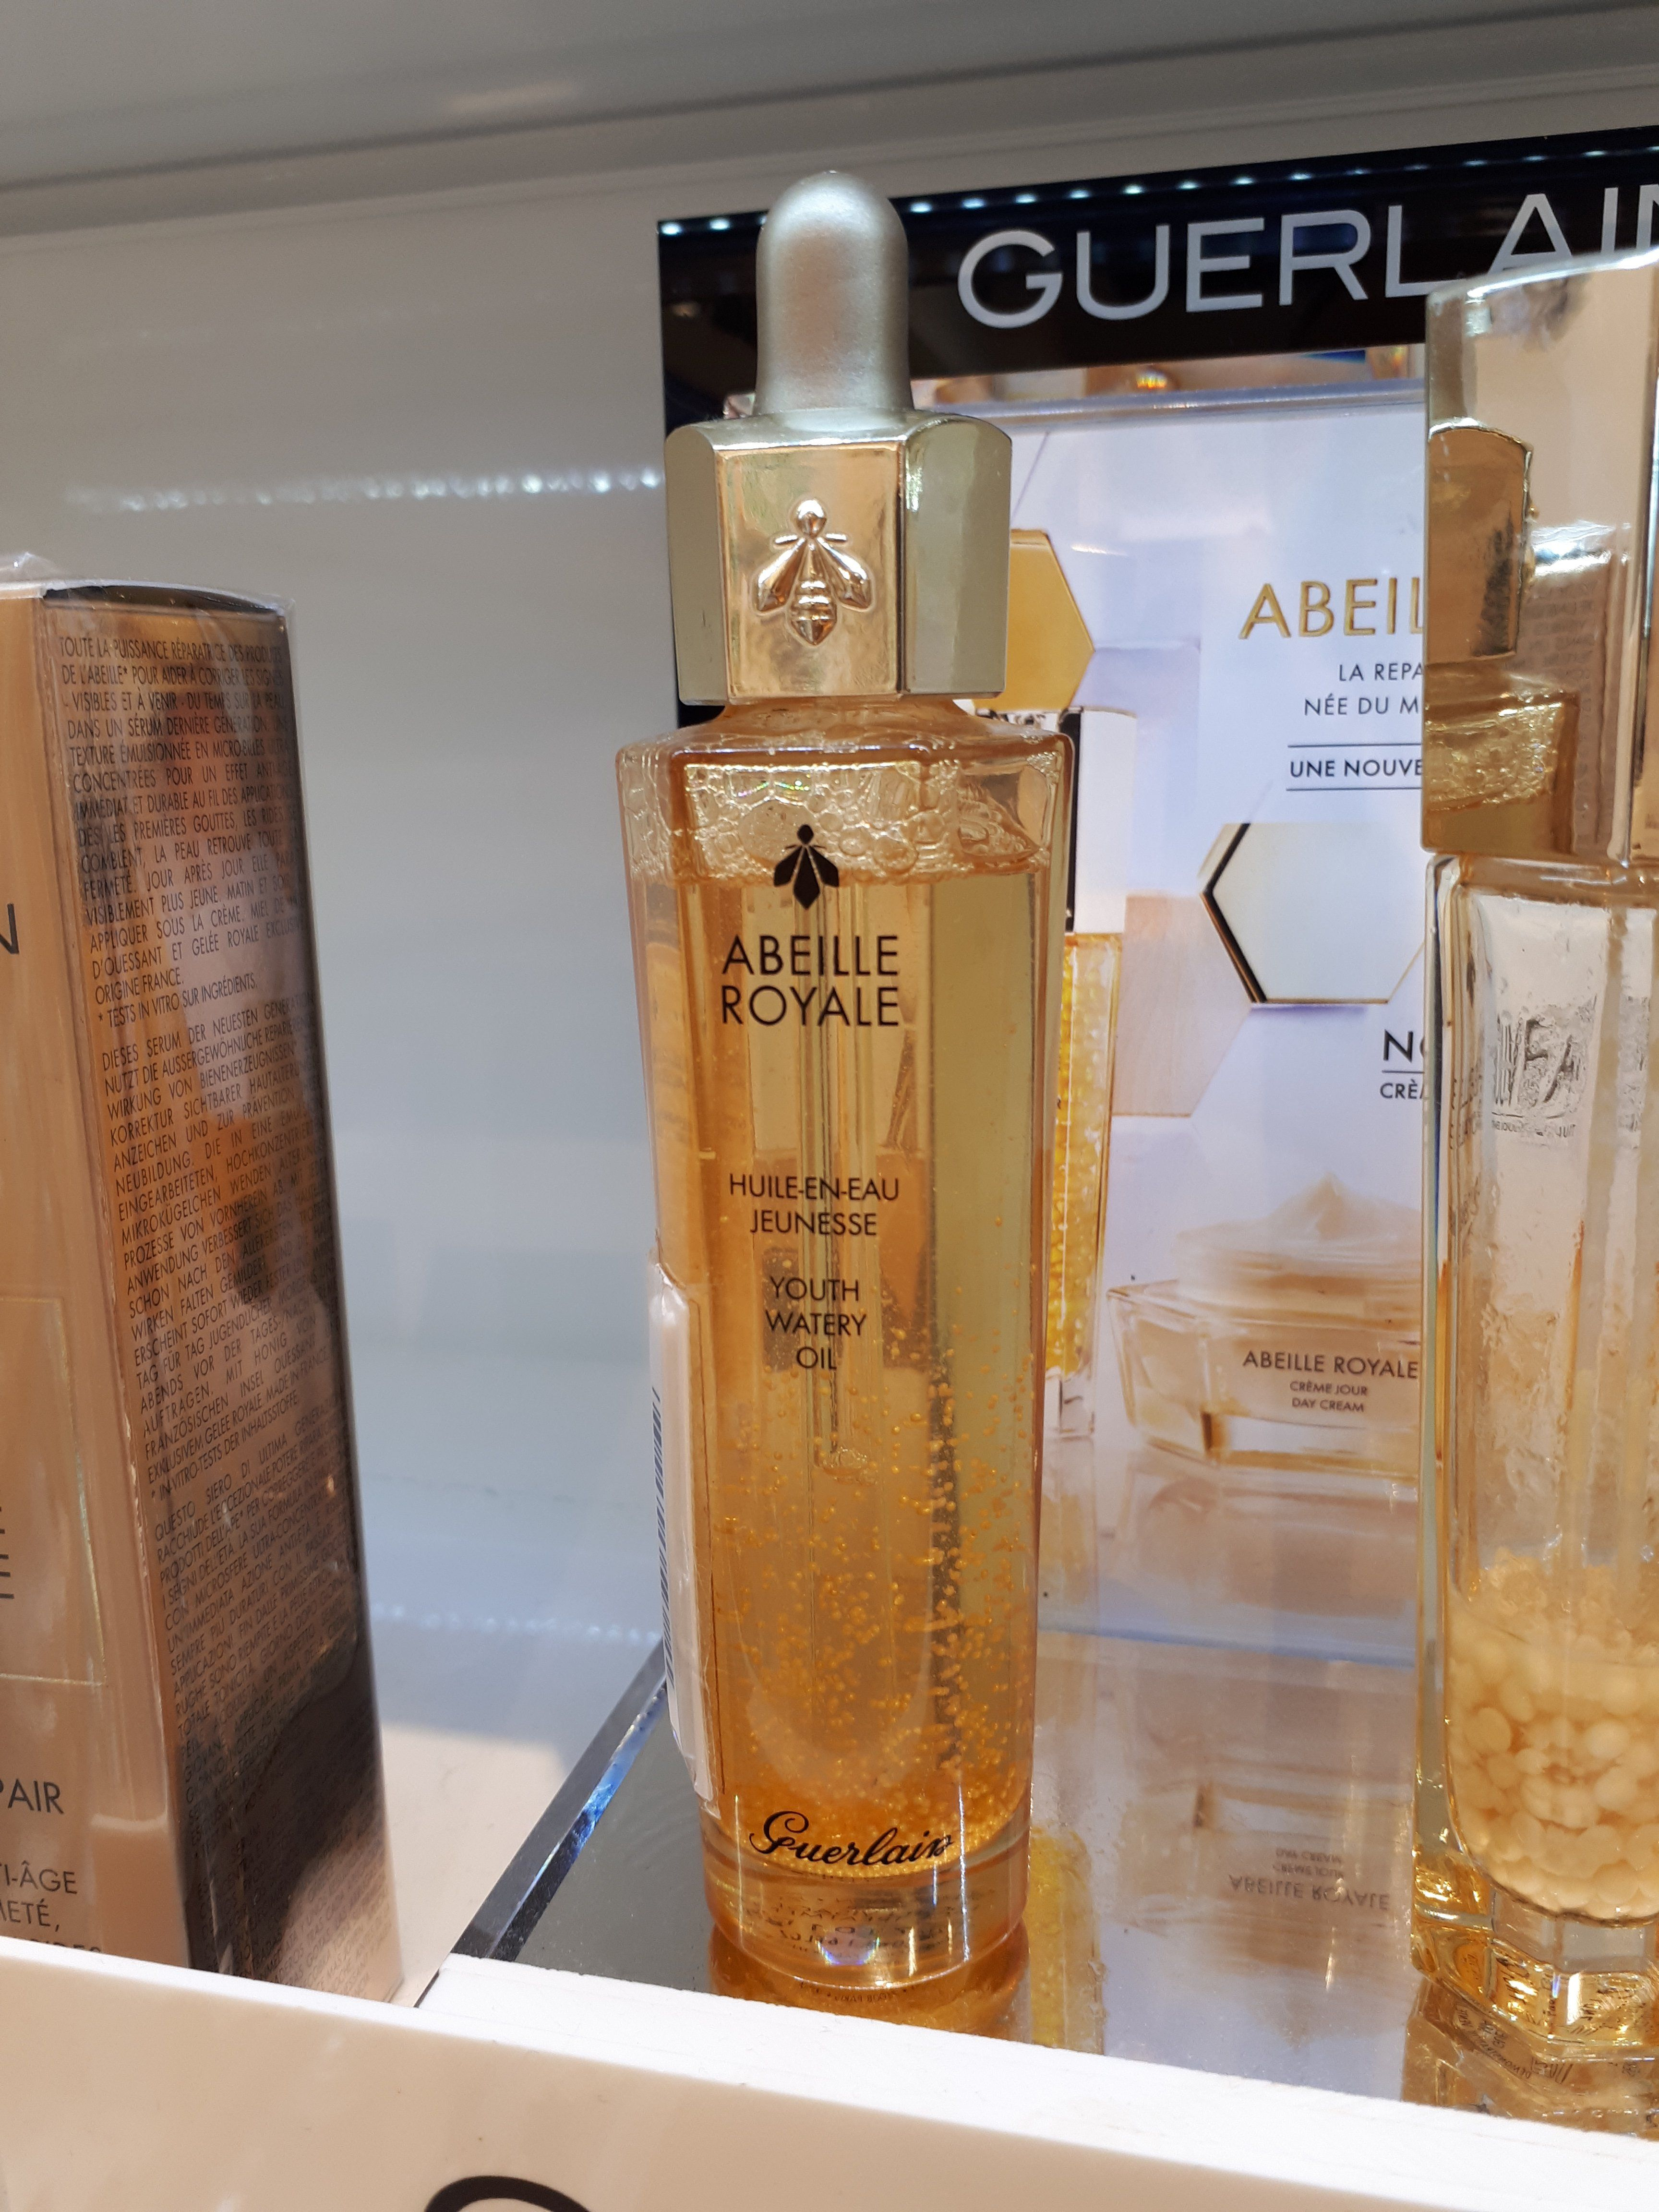 Guerlain Abeille Royale Youth Watery Oil Pearls Are Back